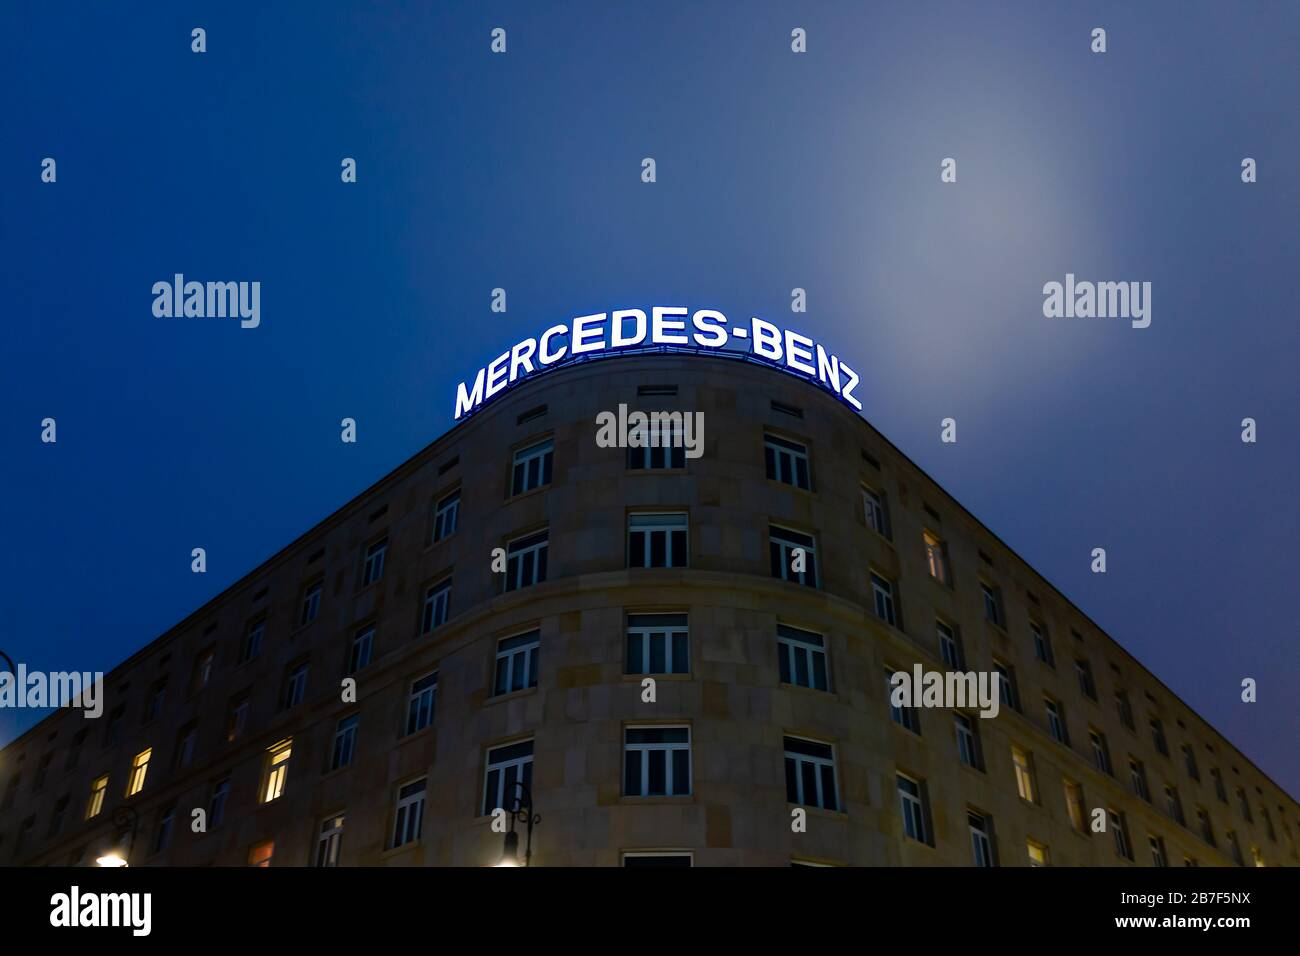 Warsaw, Poland - December 22, 2019: Dom Bez Kantow (House without Edges) housing boutique hotel at night with Mercedez-Benz neon light sign in old tow Stock Photo